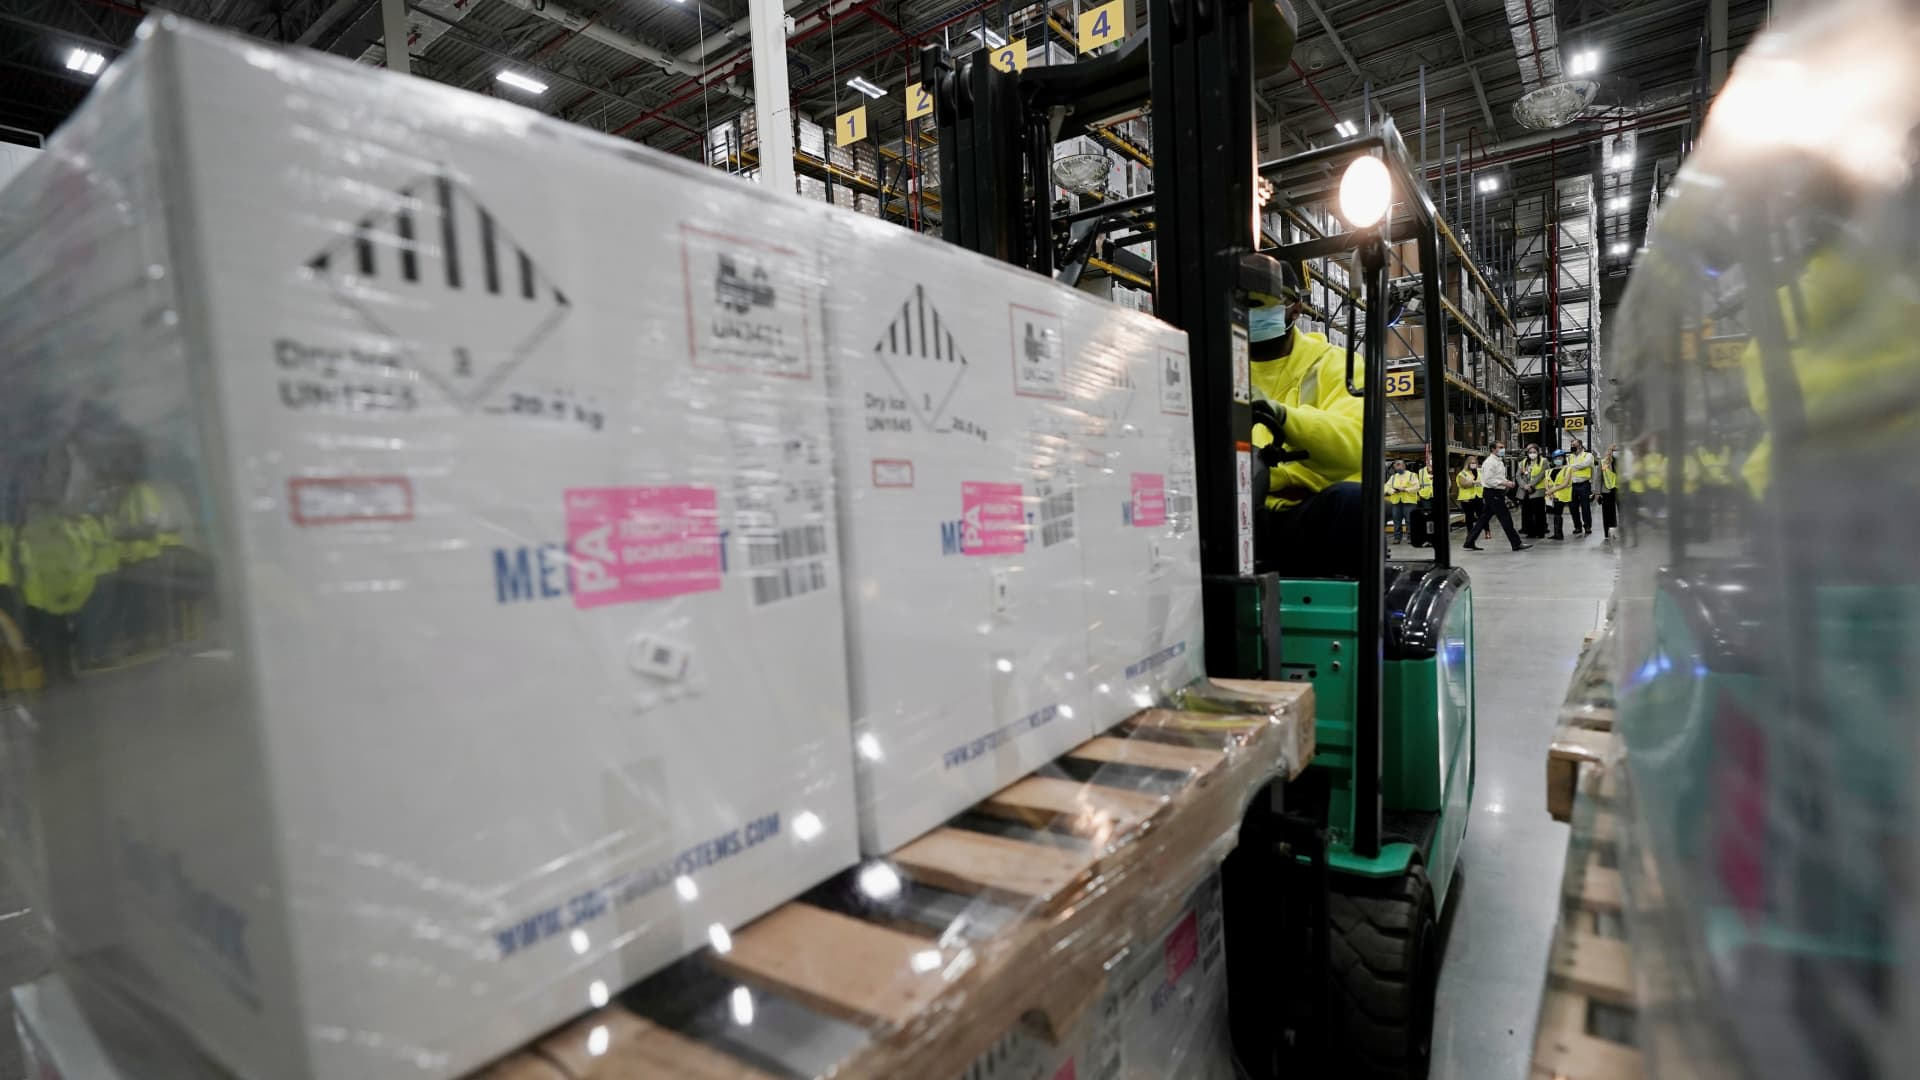 Boxes containing the Pfizer-BioNTech COVID-19 vaccine are prepared to be shipped at the Pfizer Global Supply Kalamazoo manufacturing plant in Portage, Michigan, U.S., December 13, 2020.